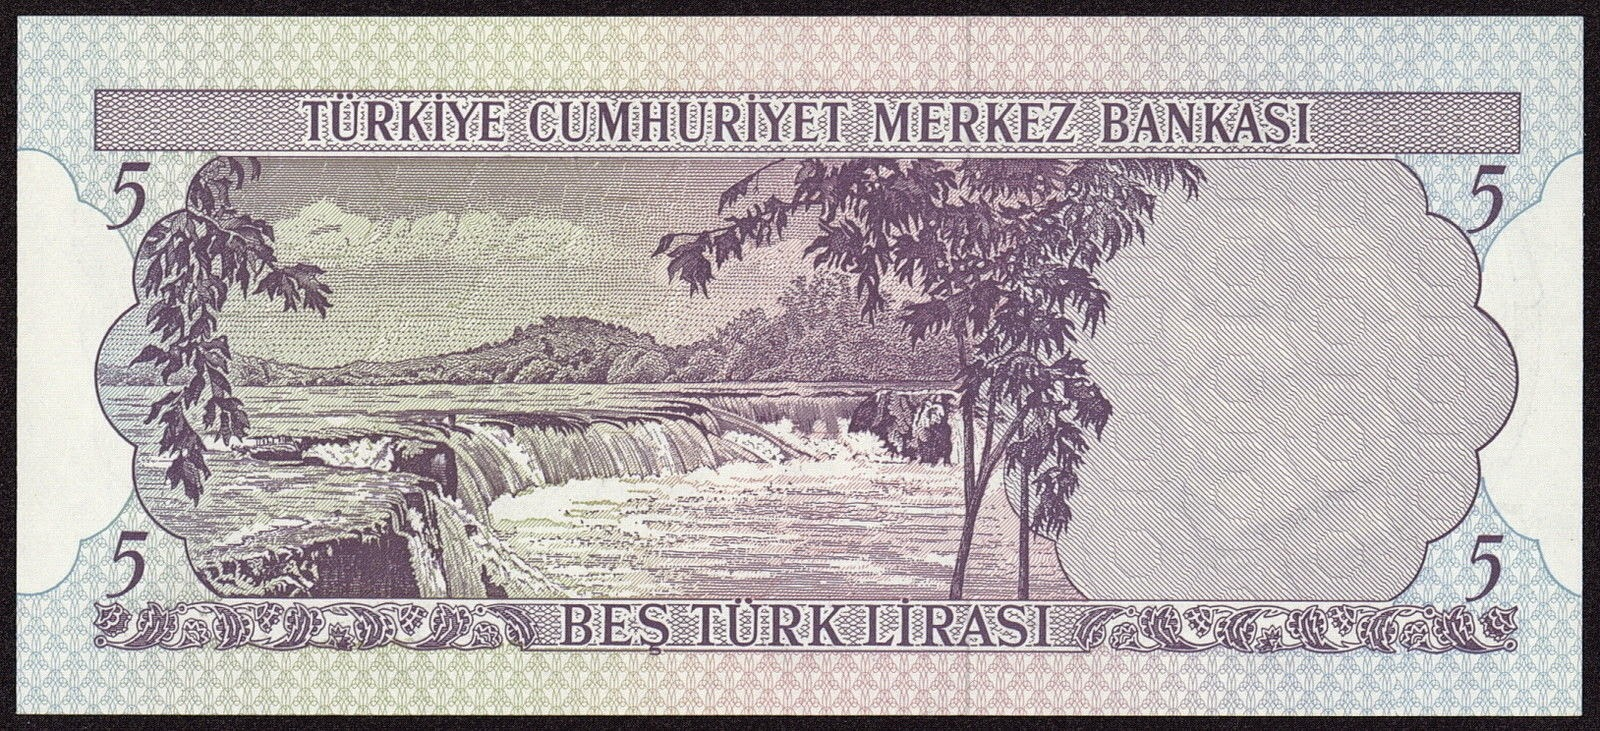 "Turkey currency money 5 Türk Lirasi ""Turkish Lira"" note 1970 Manavgat Waterfall in Antalya"